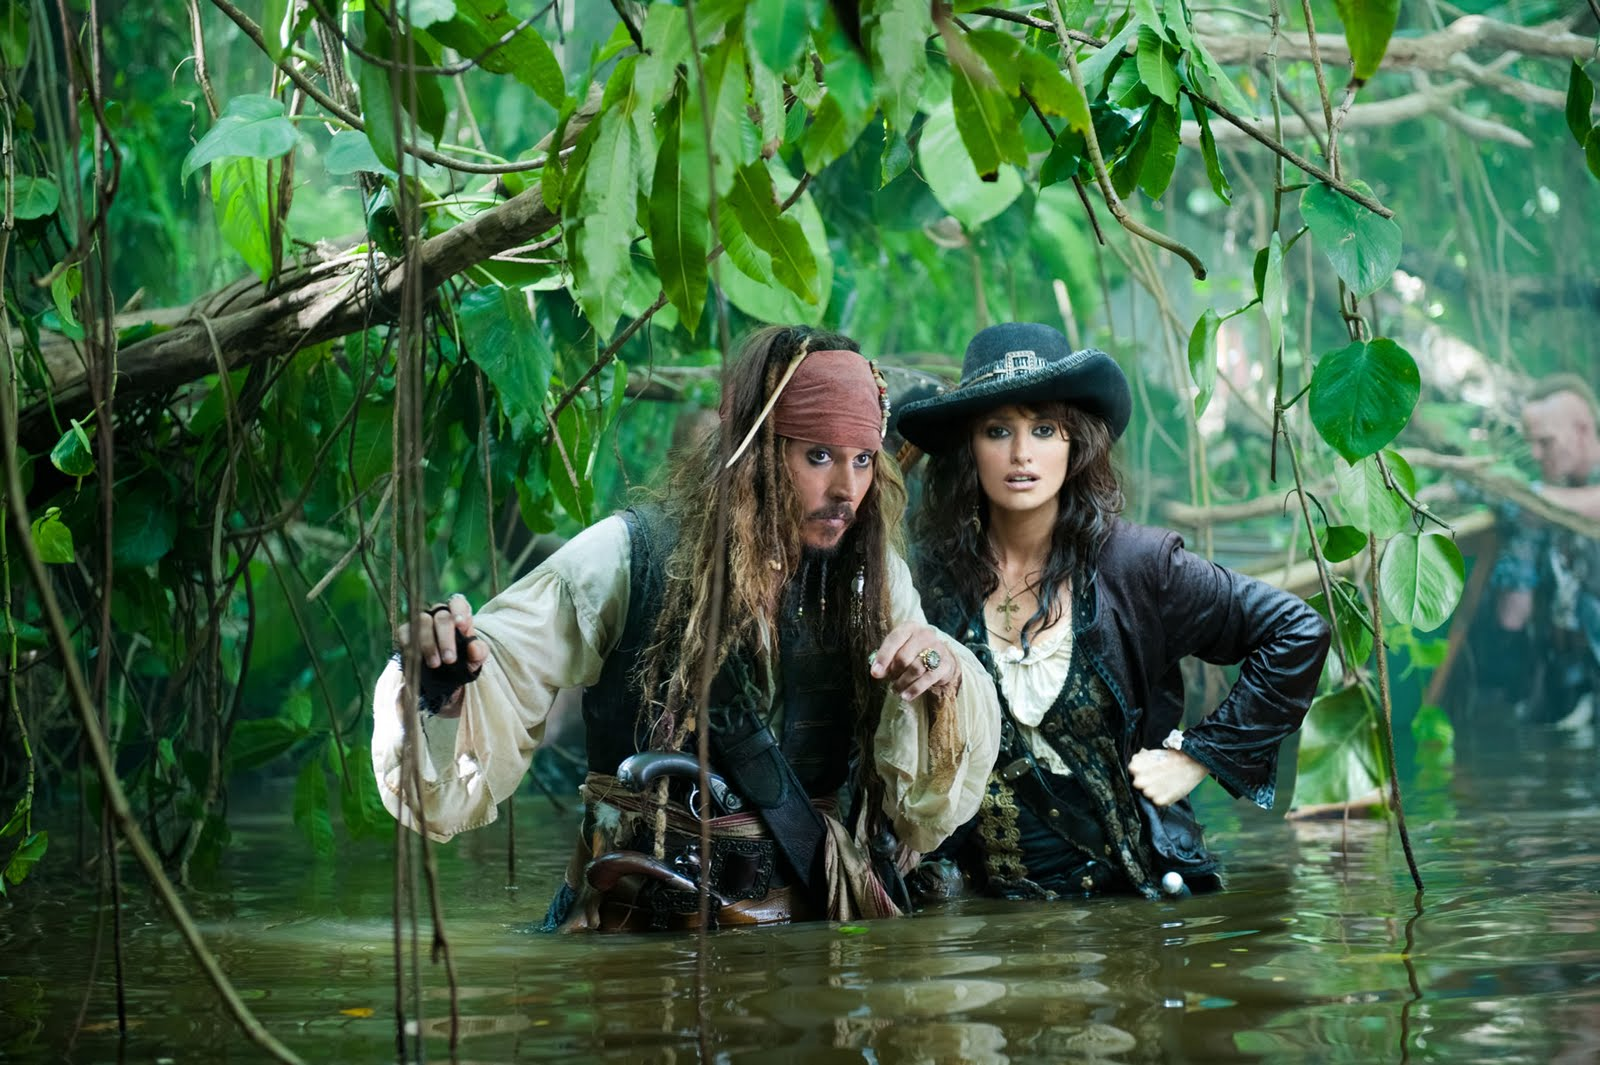 http://4.bp.blogspot.com/-5JJdSZjxMfw/TdgZ7abYx-I/AAAAAAAAB0I/OC5-EJ09dEw/s1600/johnny-depp-pirates-of-the-caribbean-on-stranger-tides-movie-image-2.jpg